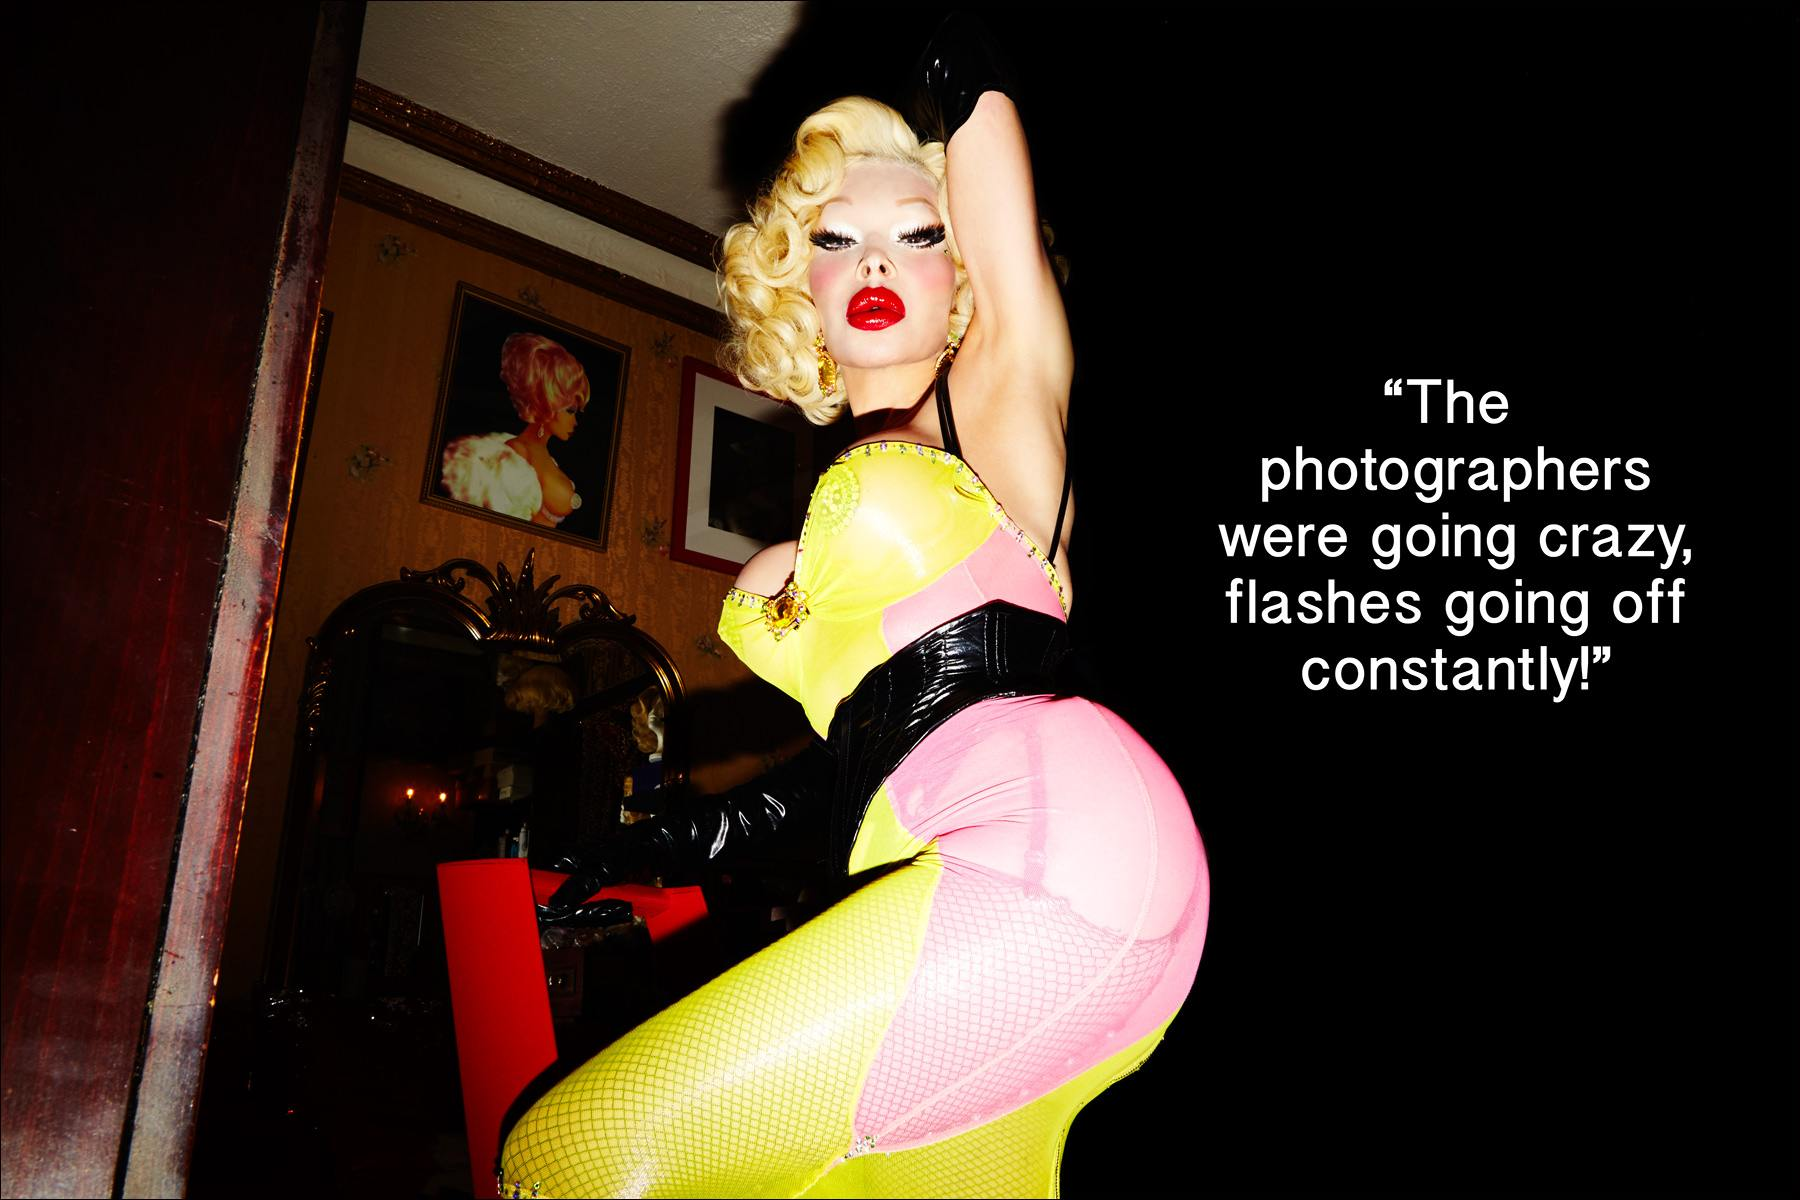 Model Amanda Lepore poses on a lader in her home in New York. Photographed by Alexander Thompson for Ponyboy magazine.